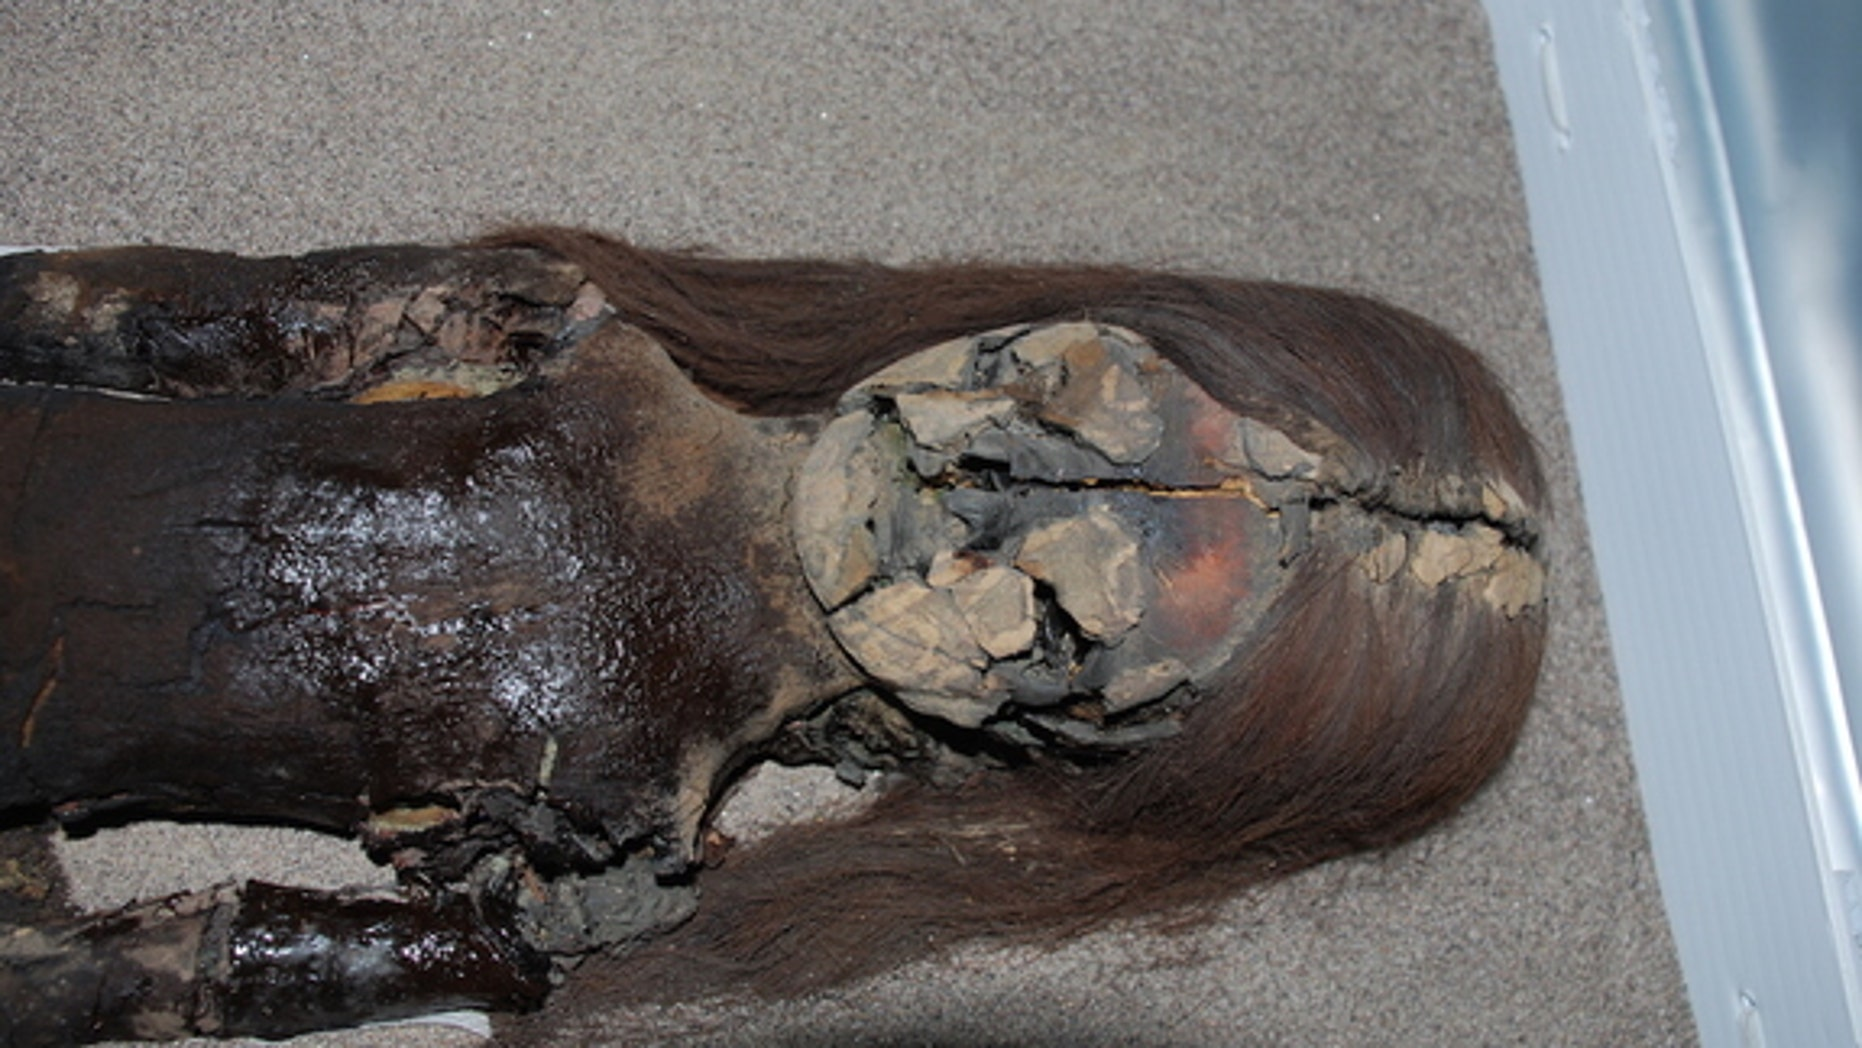 The black chest of this Chinchorro mummy shows signs of degradation, even though it is housed at the University of Tarapacá's archeological museum in Arica, Chile.